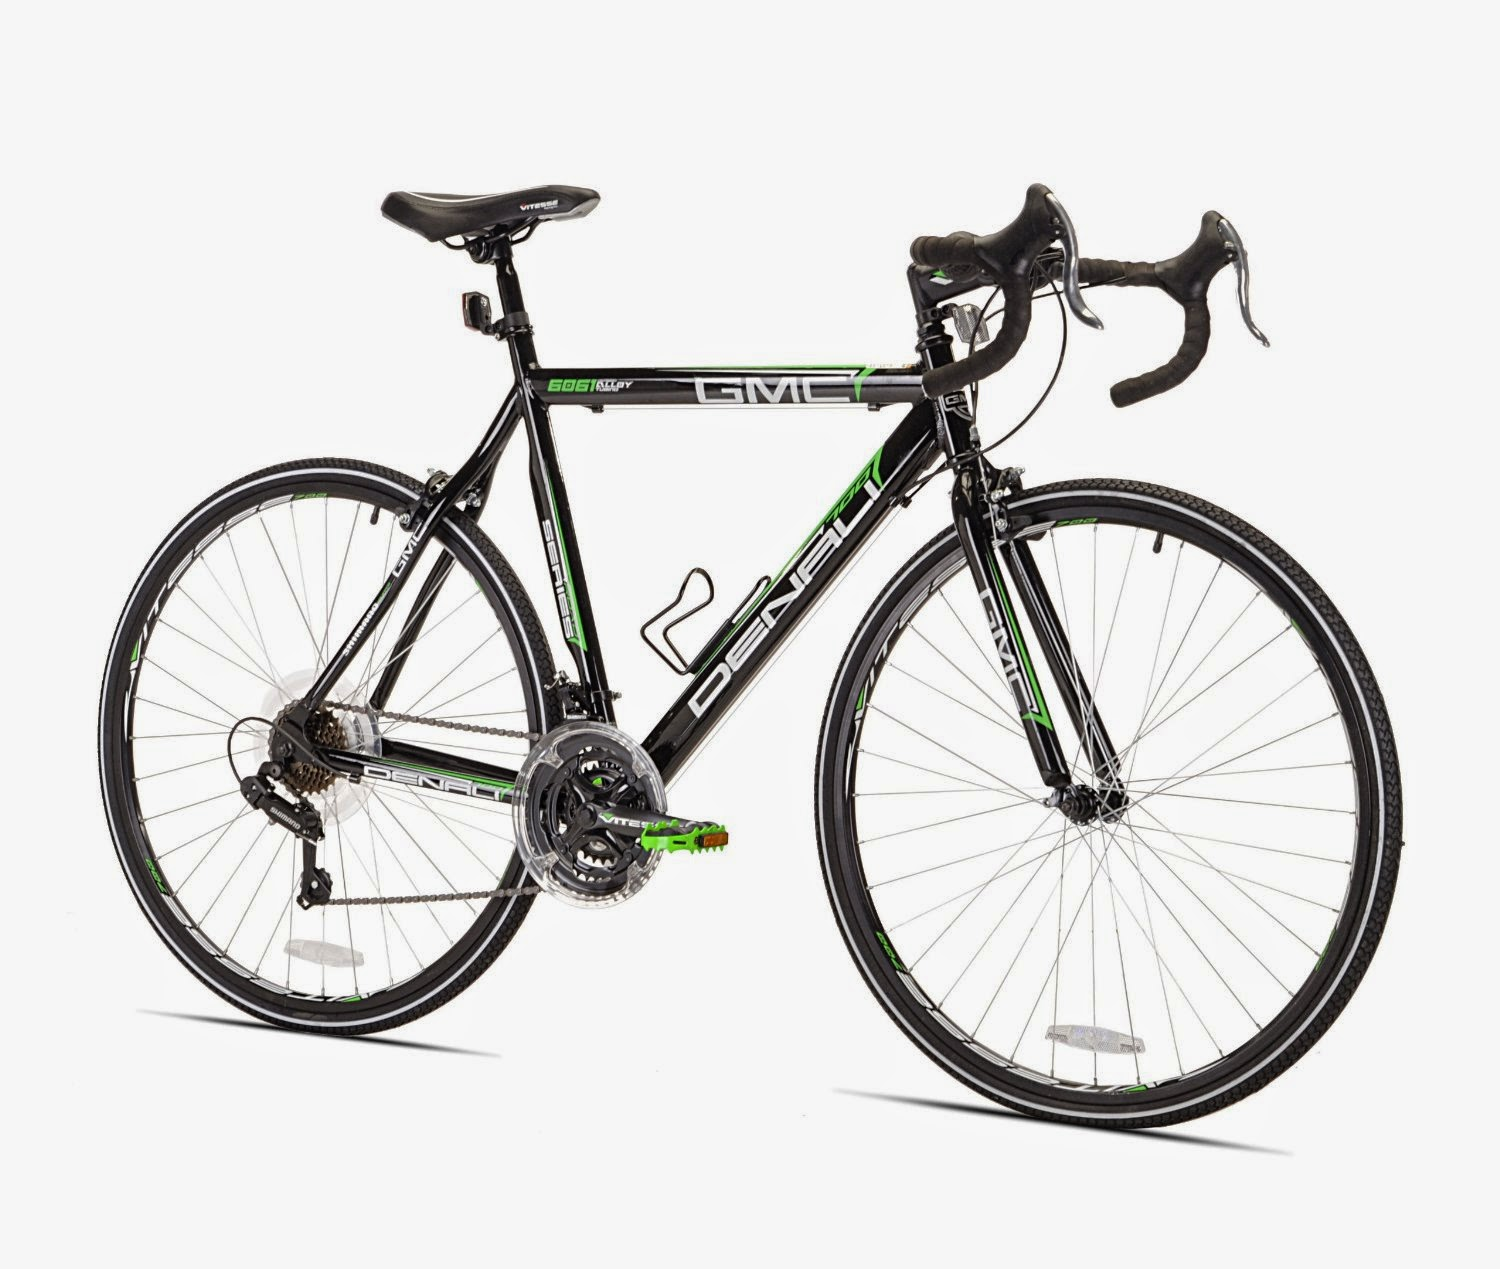 GMC Denali Road Bike, review, best selling road bike, lightweight & high performance